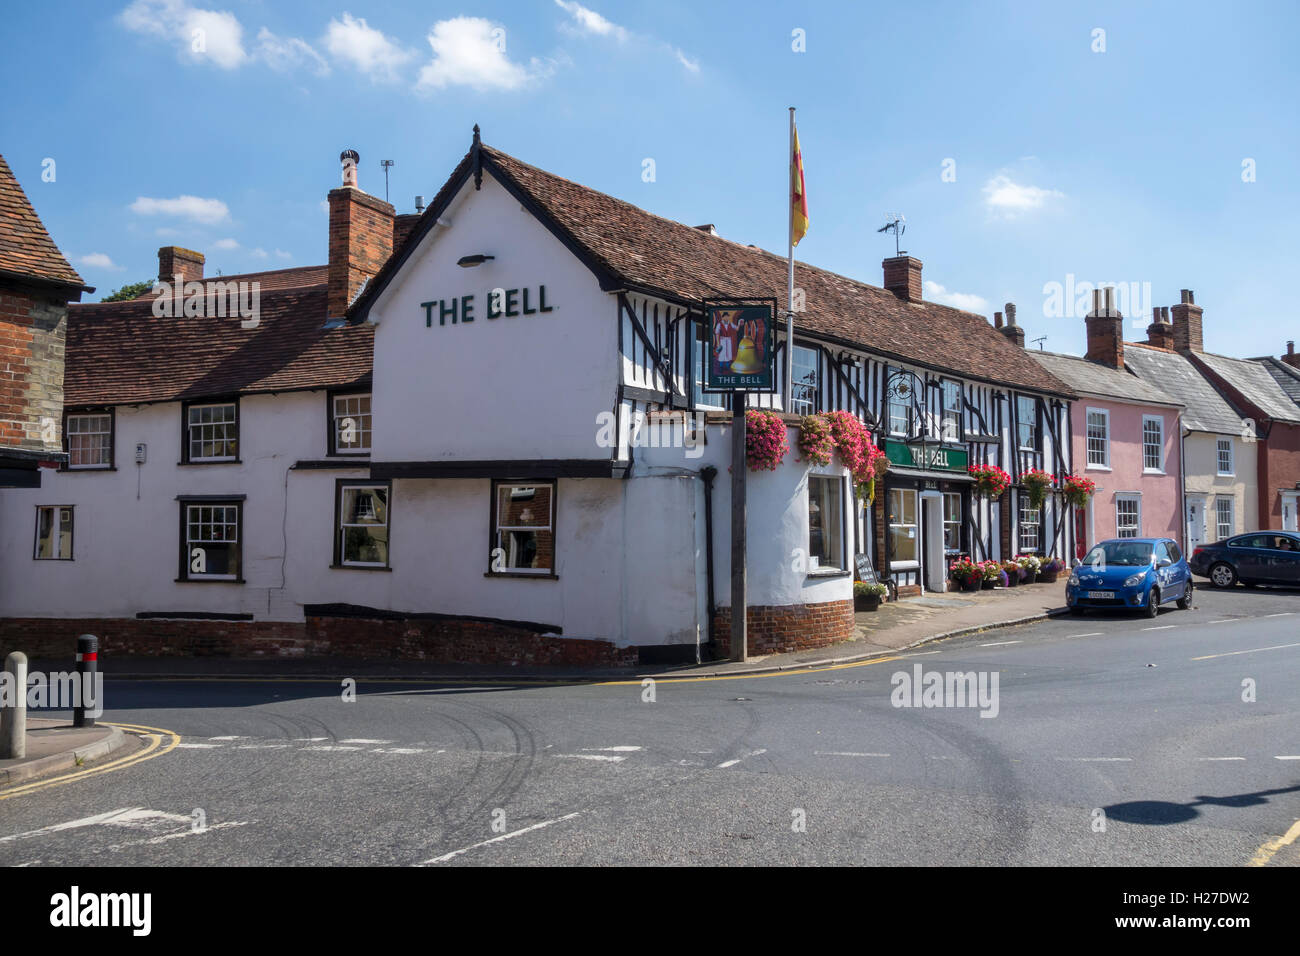 The Bell inn Clare Suffolk England 2016 - Stock Image